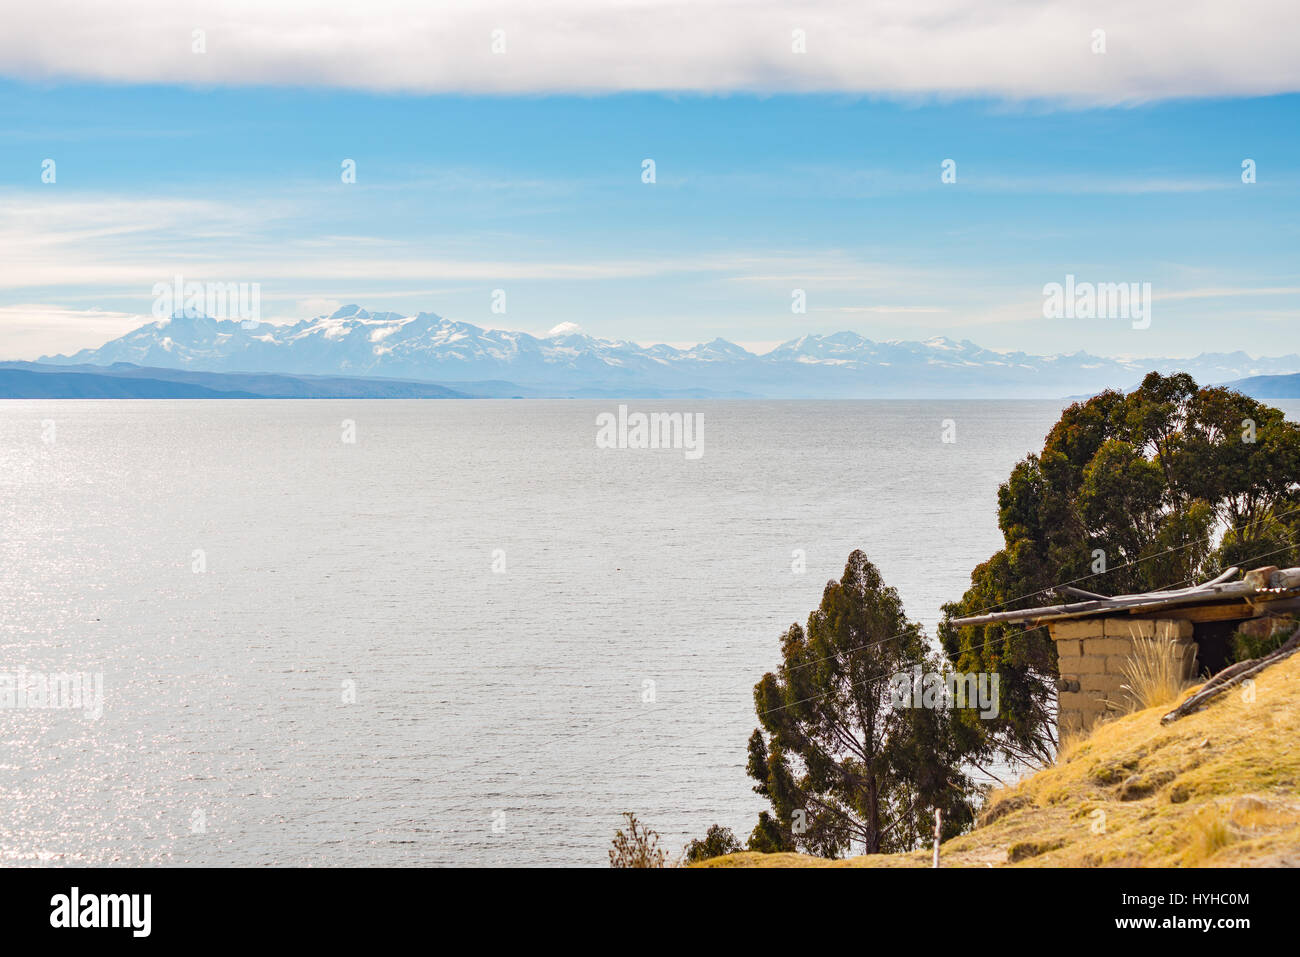 The majestic Cordillera Real mountain range at the horizon of the Titicaca Lake. Telephoto view from the Island - Stock Image